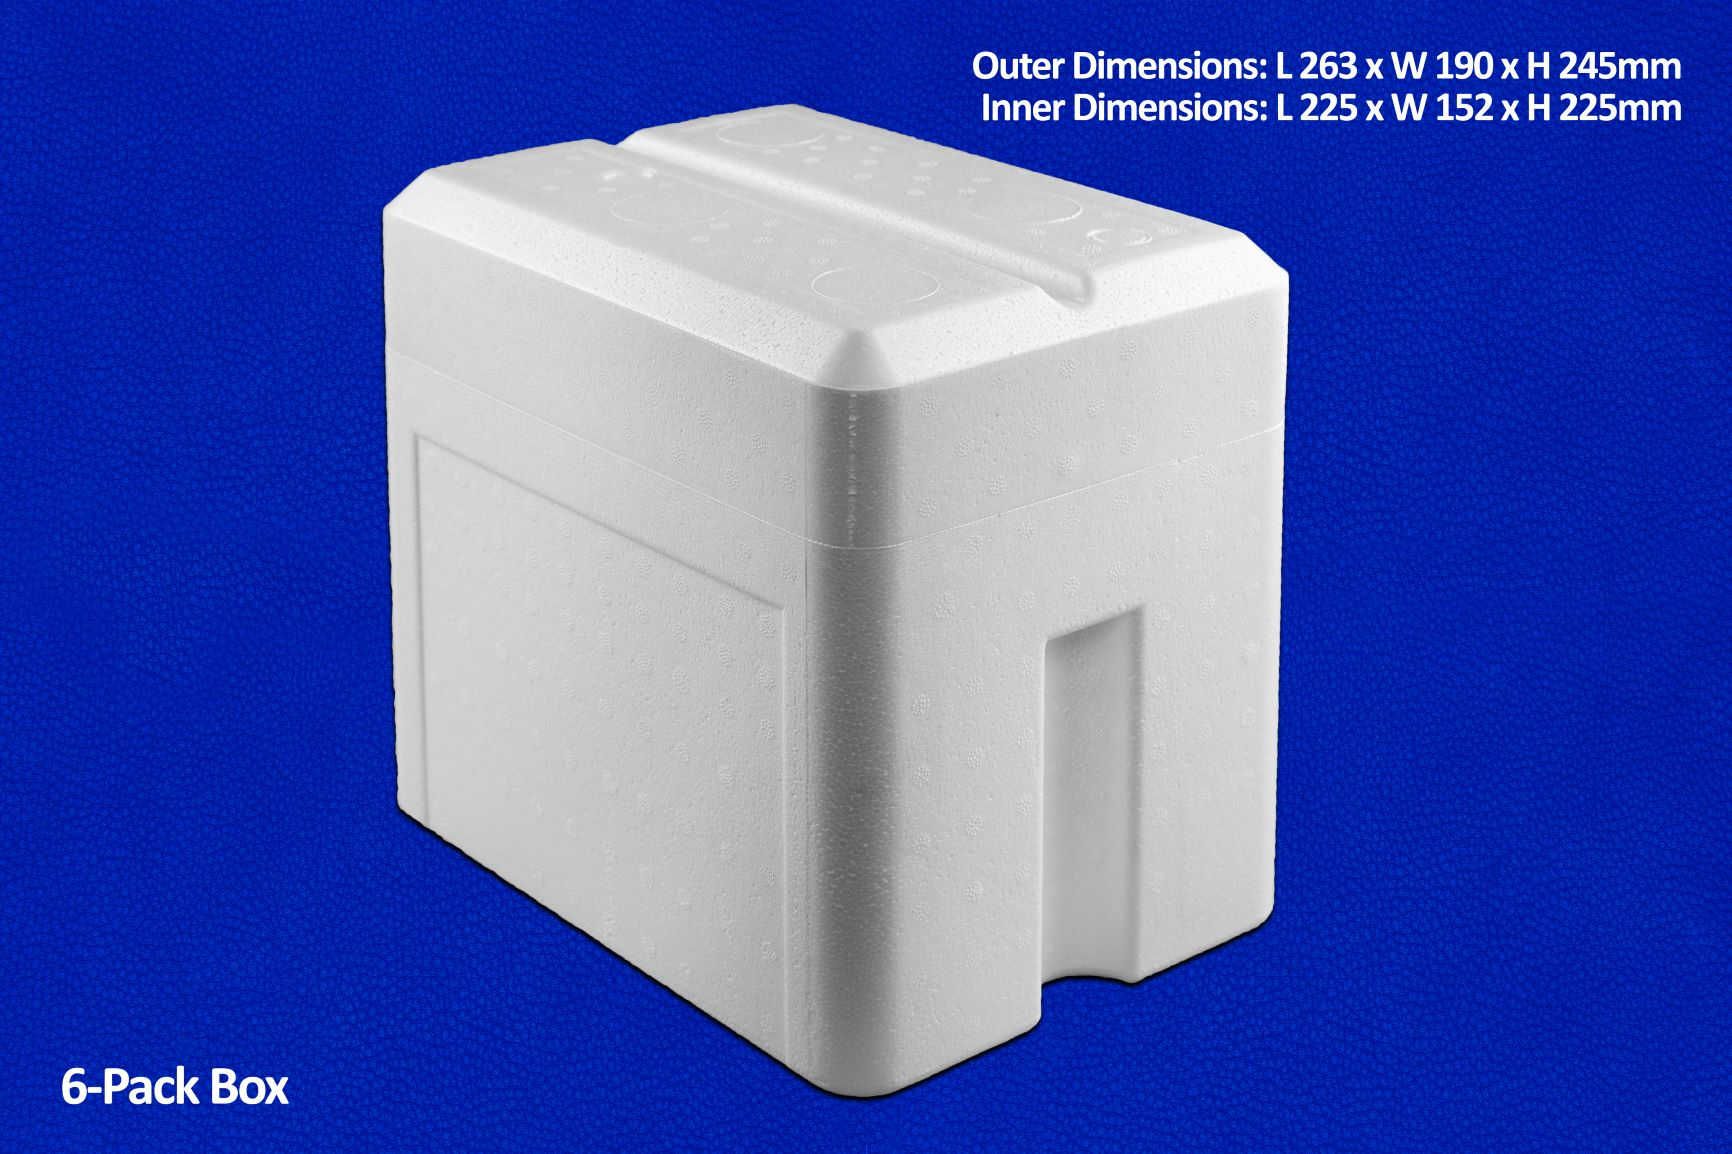 6-Pack Box Container